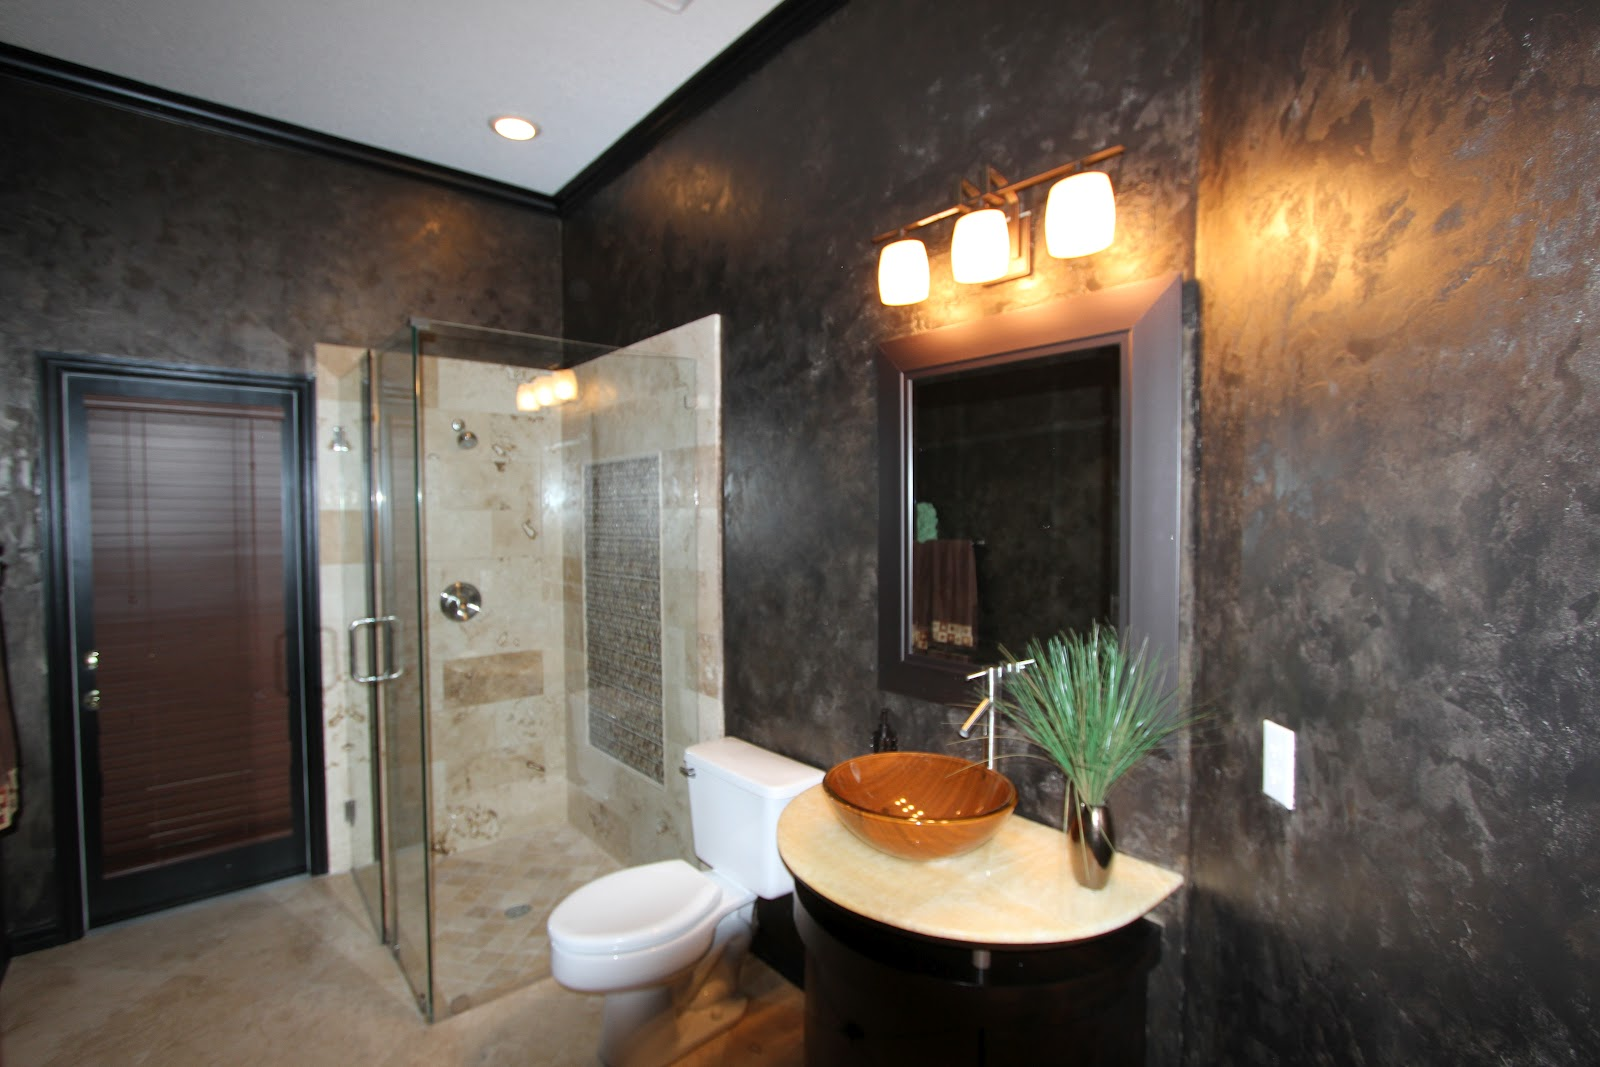 Best Wall Paint For Bathroom: Morrone Interiors: Making A Splash With A Pool Bath